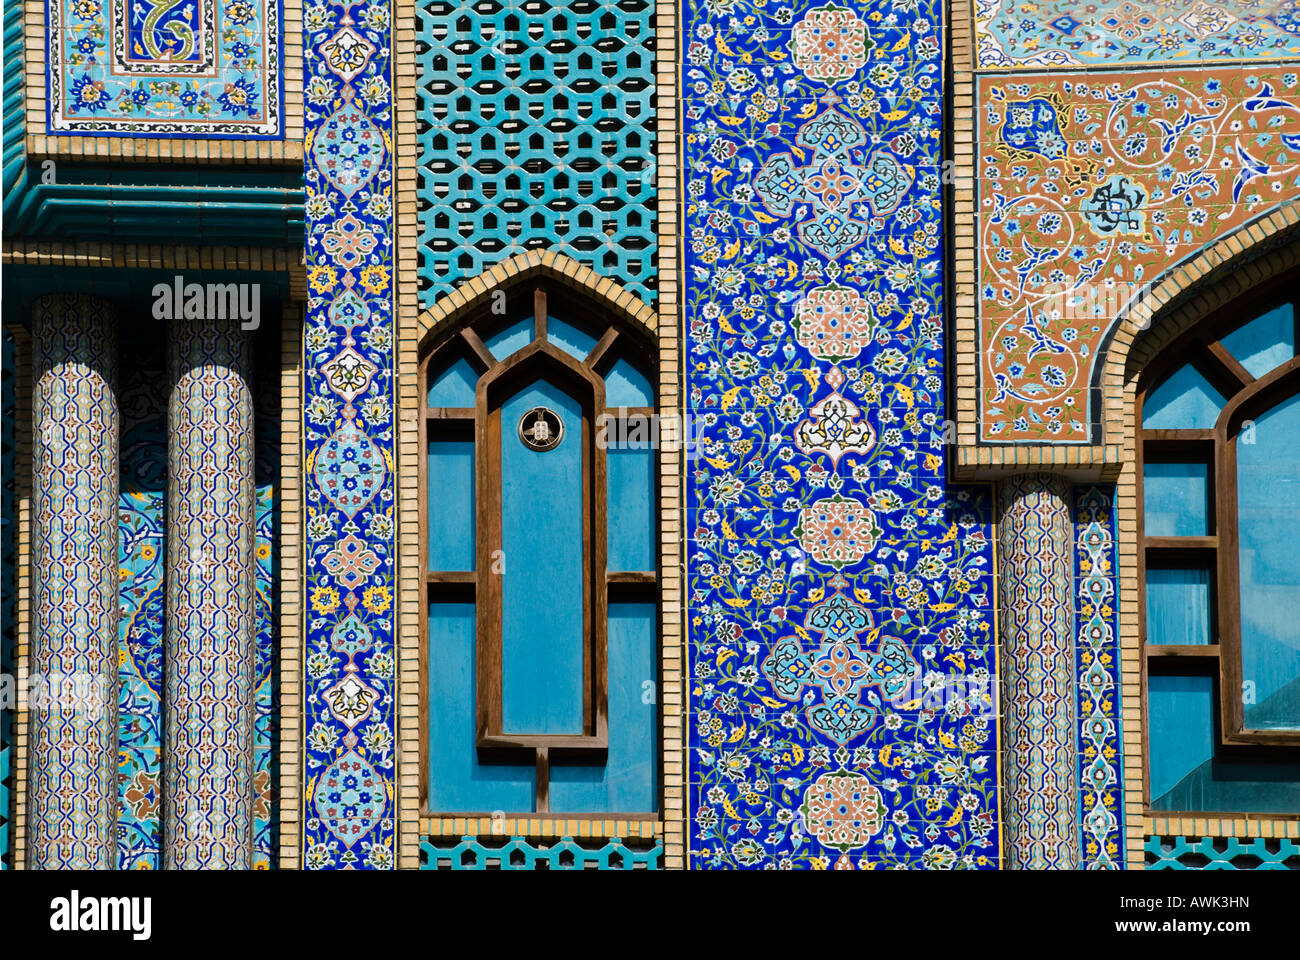 Arab patterns in ceramic tiles stock photos arab patterns in persian tile mosiac work on the iranian mosque in dubai uae stock image dailygadgetfo Image collections